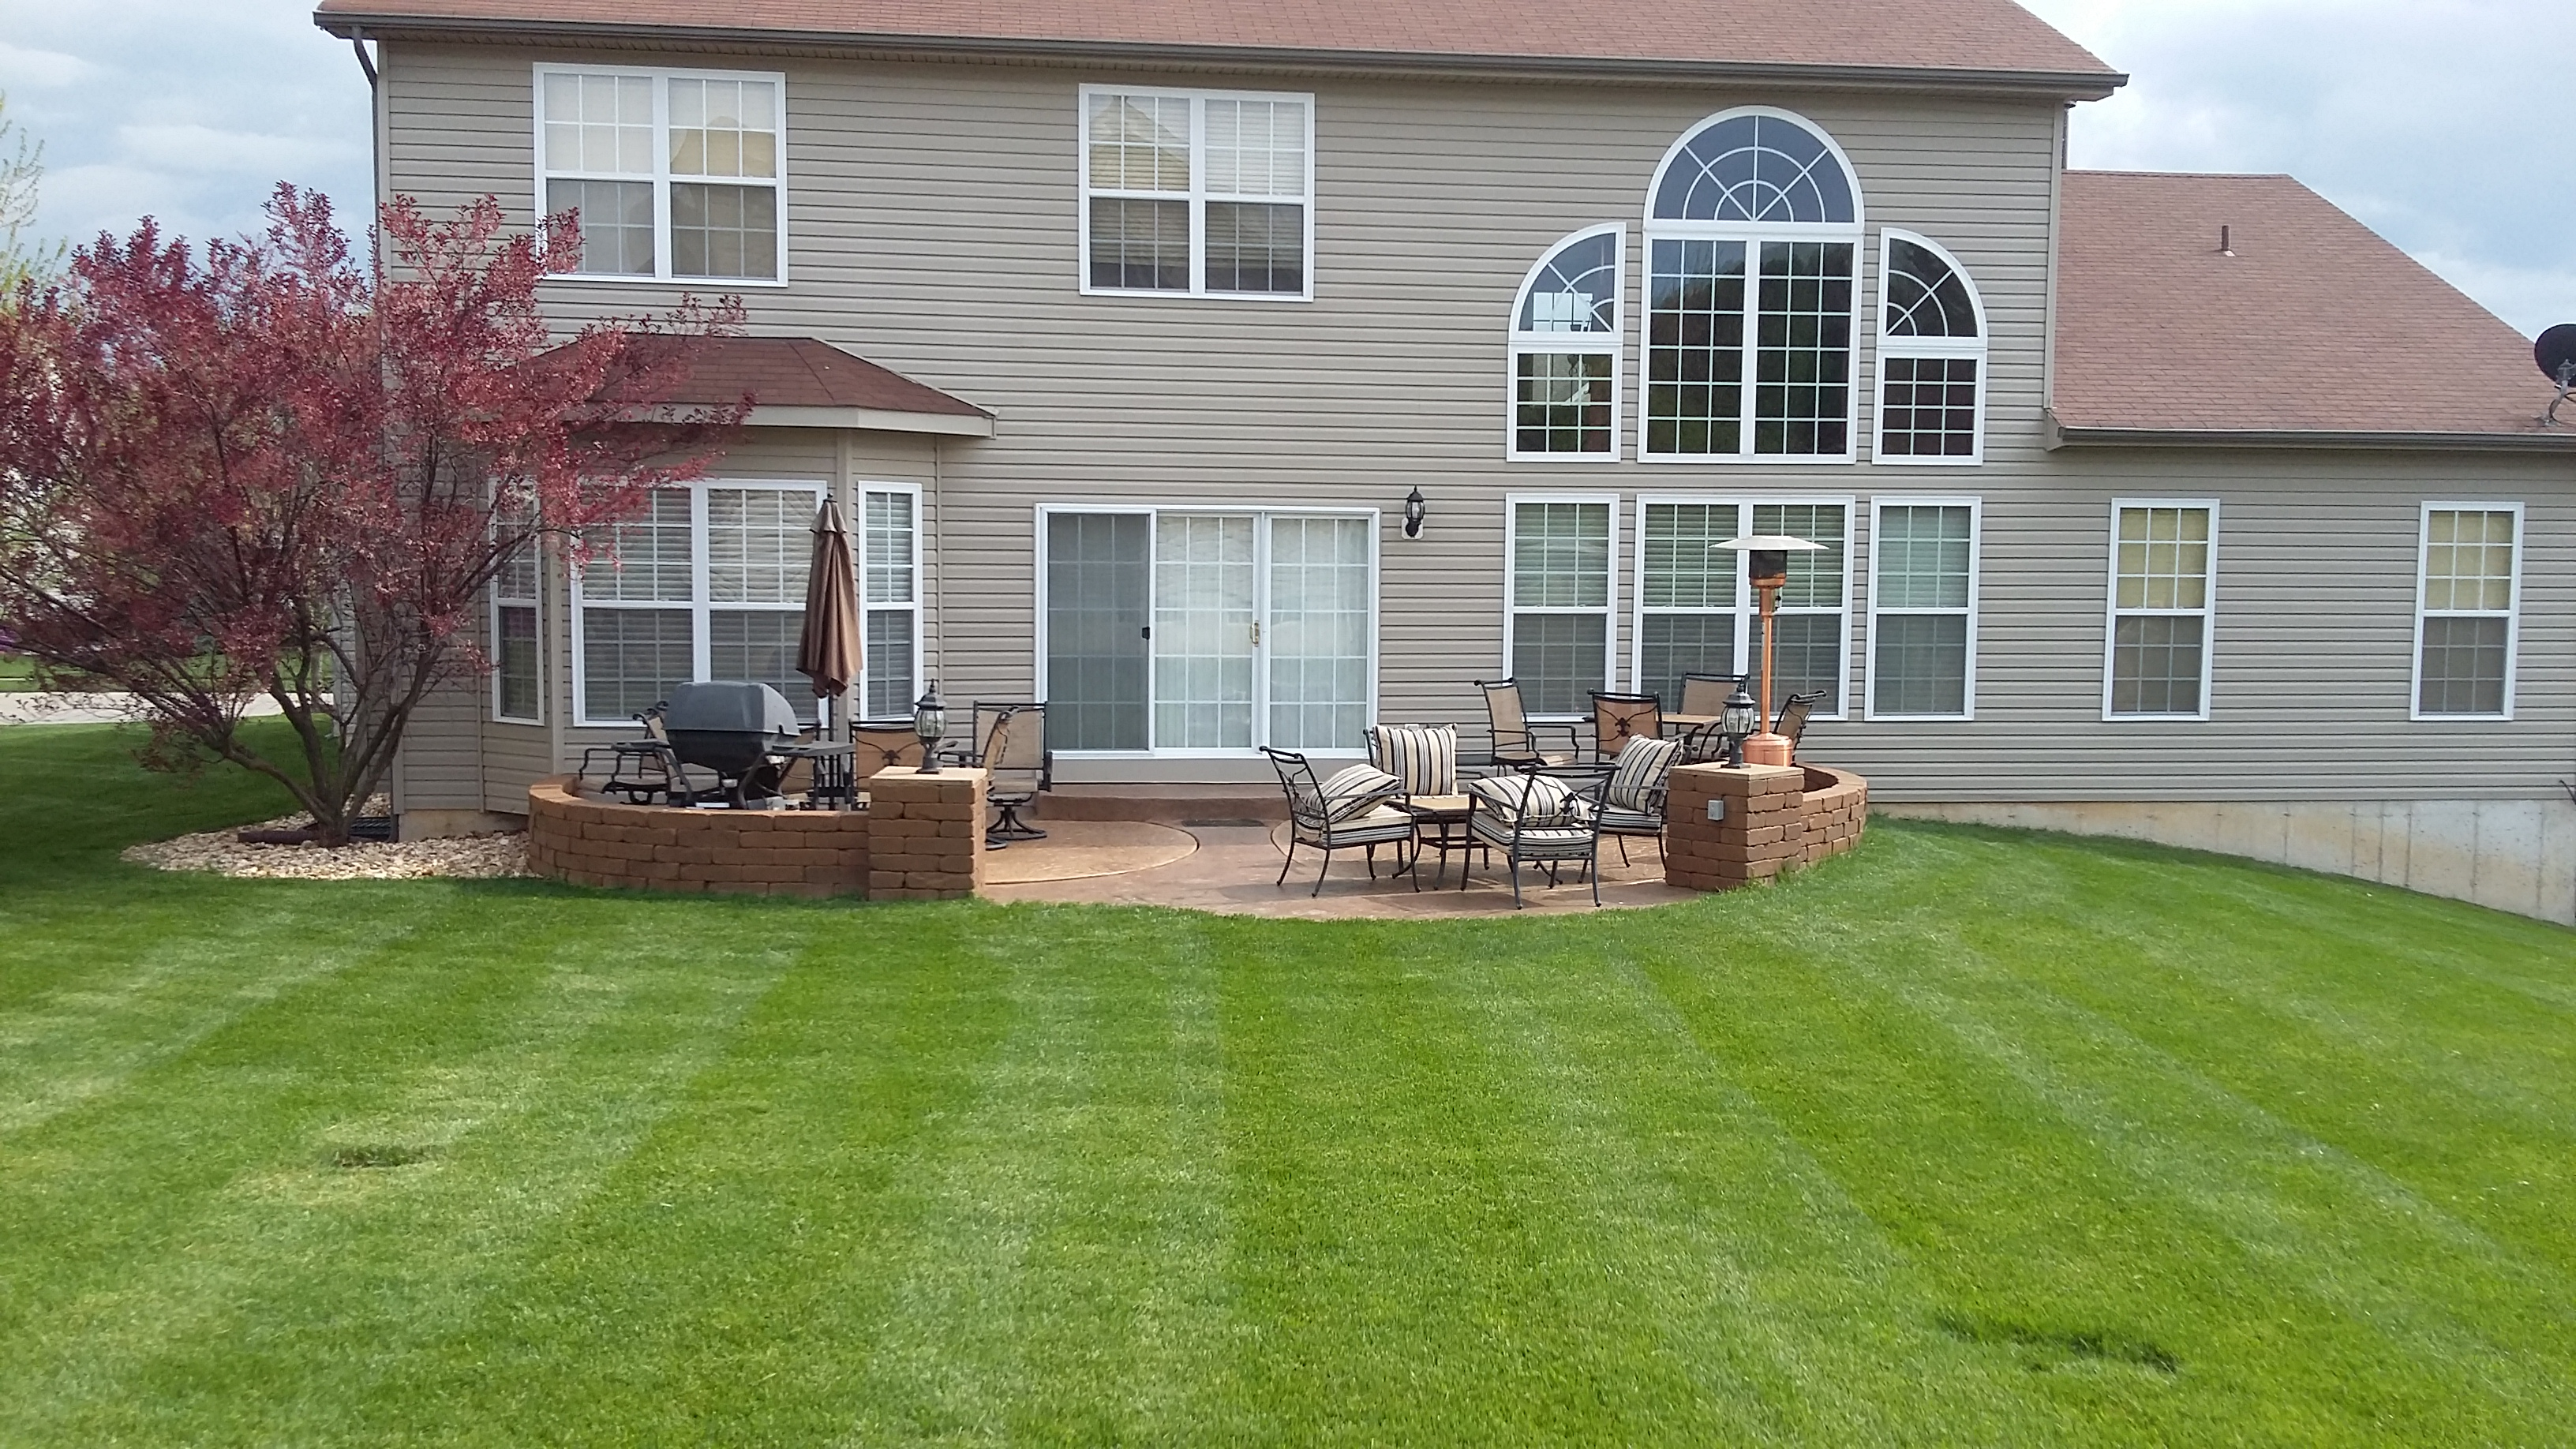 Order Lawn Care in Pevely, MO, 63040